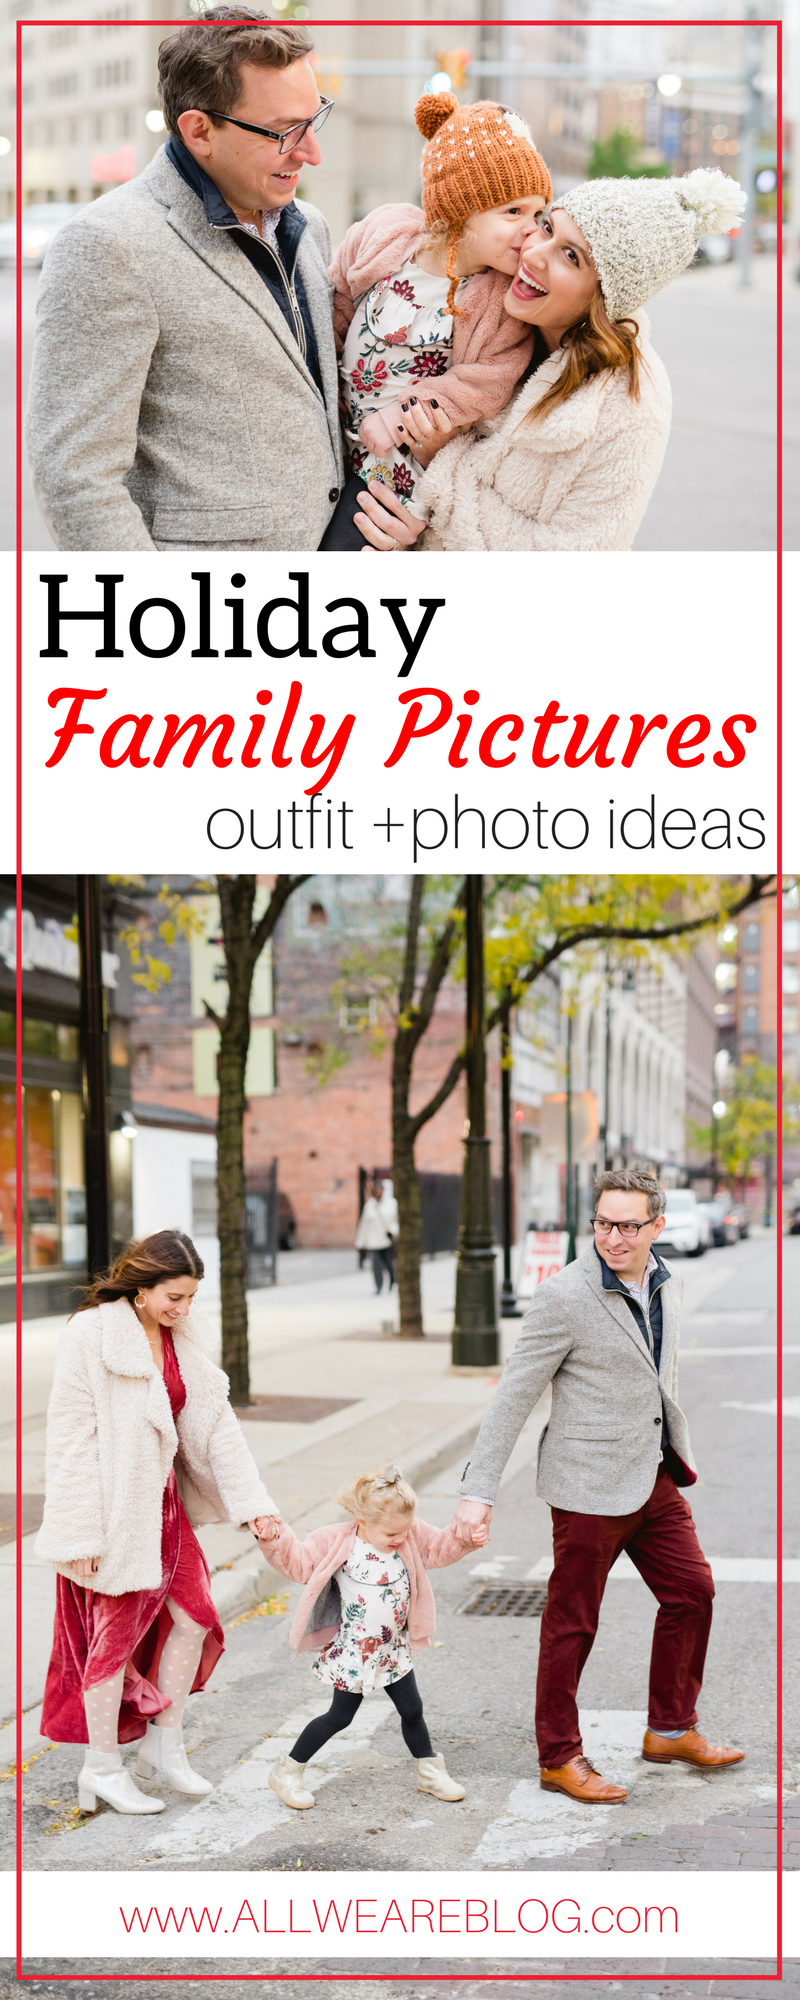 our holiday photos | what to wear for family holiday photos | family christmas photo ideas on allweareblog.com